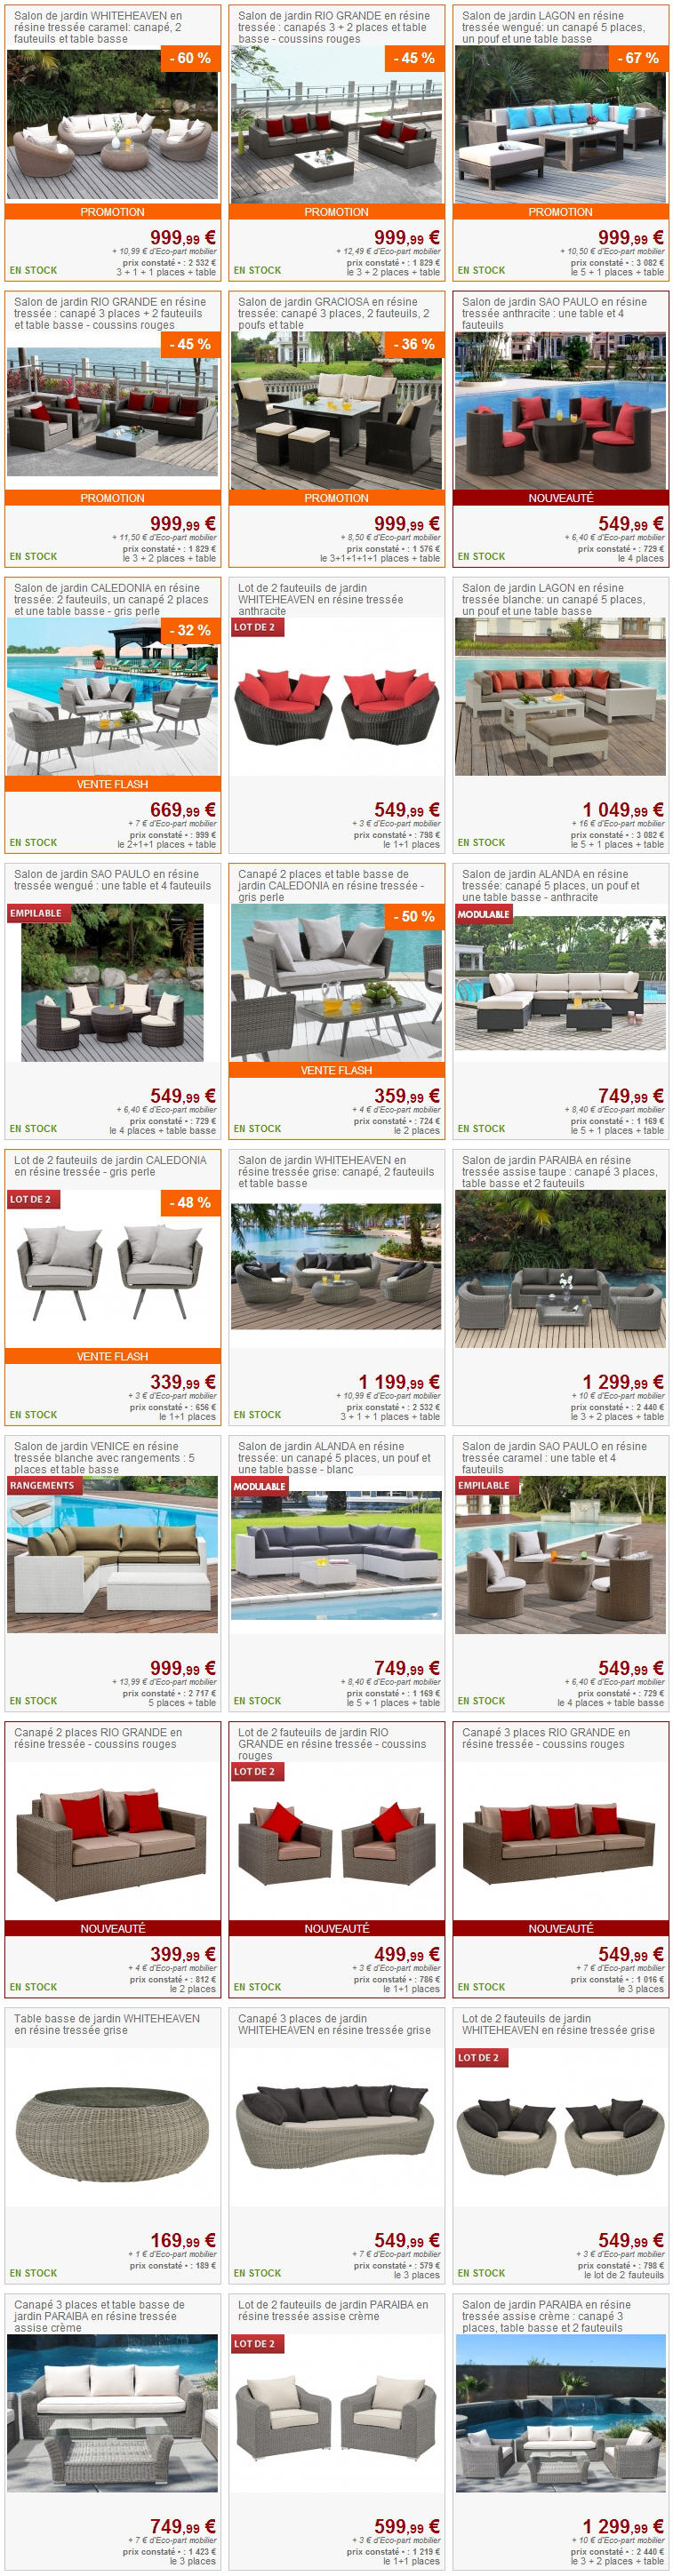 salon de jardin pas cher vente unique 1er prix ventes pas. Black Bedroom Furniture Sets. Home Design Ideas